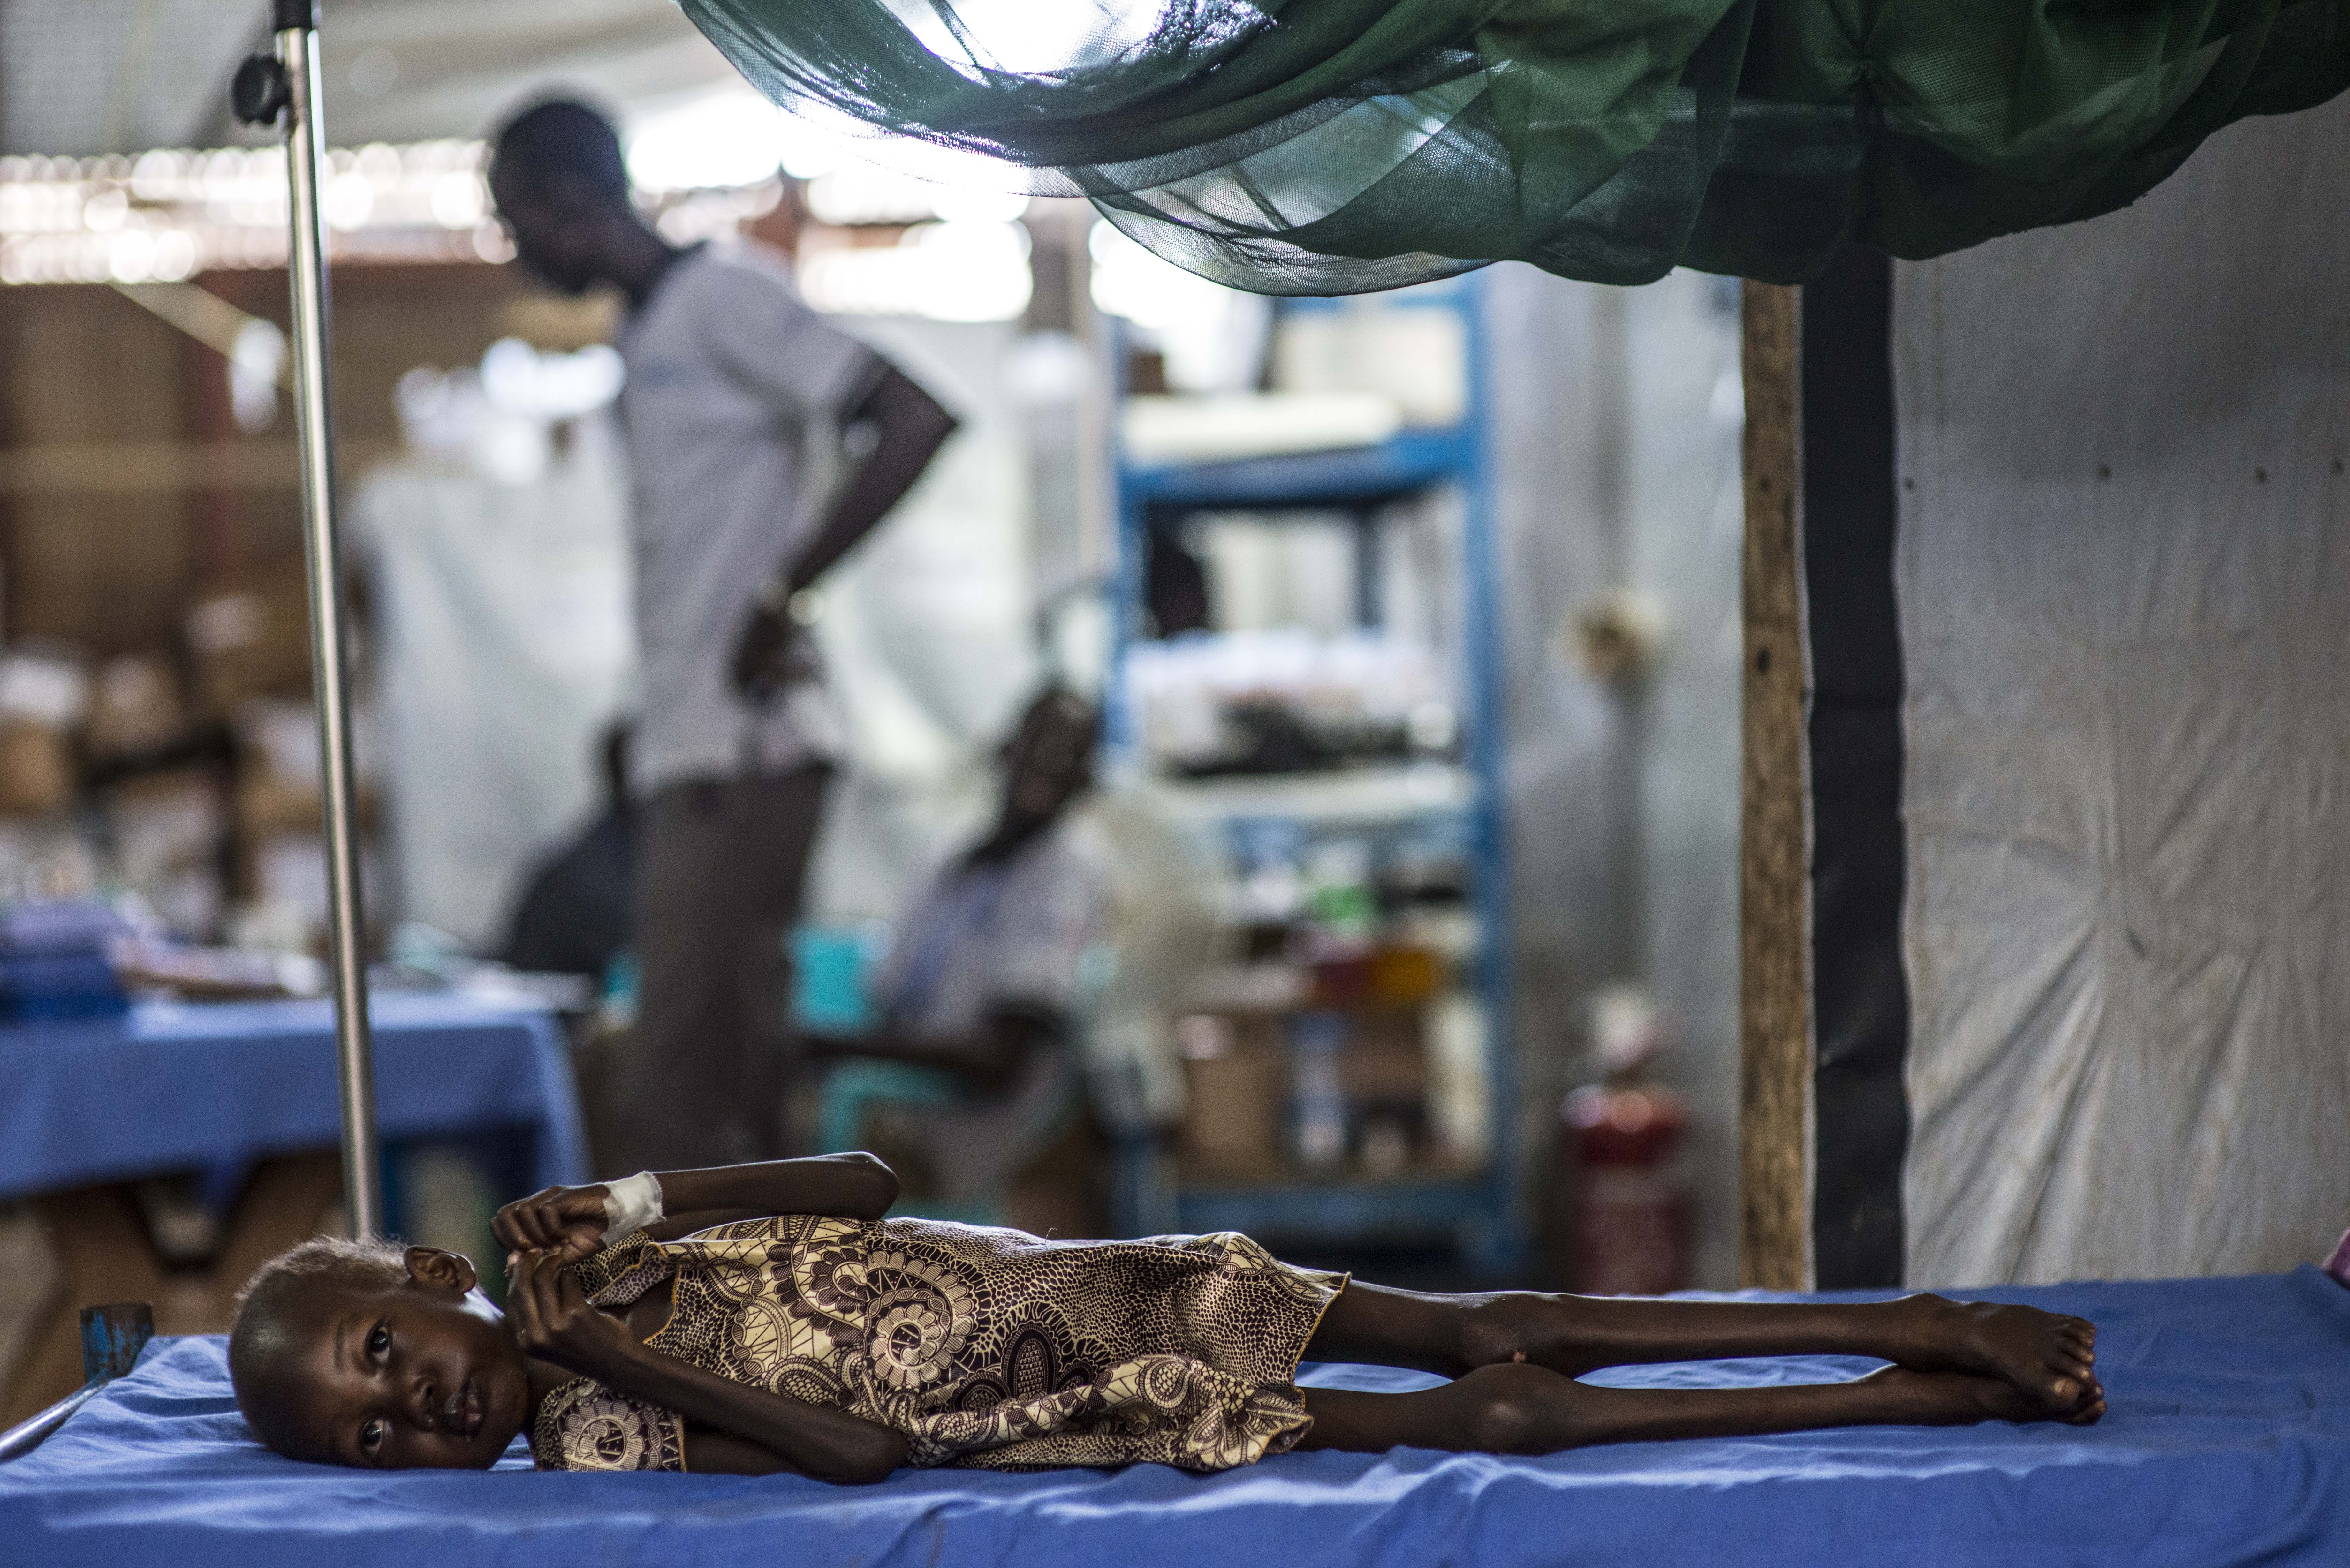 """Nyajime Guet, 4, who is suffering from severe acute malnutrition and tuberculosis, lies on a bed at a UNICEF-supported clinic where she is being treated, at the Protection of Civilians (PoC) site in Juba, South Sudan, Monday, 12 October 2015. A four-year-old of her age and height should weigh 19.5 kilograms, rather than the 9 kilograms Nyajime weighs.  Four-year-old Nyajime Guet was suffering from severe acute malnutrition (SAM) with medical complications when she was admitted on 12 October 2015 to the UNICEF-supported clinic at the Protection of Civilians (PoC) site in Juba, South Sudan. Weighing just nine kilograms, rather than the 19.5 kilograms a healthy girl of her age and height should weigh, Nyajime was emaciated and near death.  Nyajime's family, comprising of her parents and two siblings, arrived at the Juba PoC in November 2014. Her father Michael View, 39, studies social science at Upper Nile University in Juba. When fighting broke out in Bentiu, the university offered support to move Michael and his family to the PoC site in Juba, so that he could continue his studies and keep his wife and children safe. With no income, the family relies on food and services provided by the UN.  """"There was no food at home and we couldn't feed her well,"""" says Michael talking about his daughter Nyajime, """"she was getting more and more sick every day. The day when I brought her to the clinic she wasn't moving, she couldn't walk or sit.""""   With the intervention of closely monitored feeding of UNICEF provided milk-based fortified food that is full of nutrients, along with drugs to combat her tuberculosis, Nyajime improved steadily. Within two weeks, Nyajime was on the path to a full-recovery. Ten-months on, she is nothing like the emaciated little girl who was first admitted. Nyajime still attends regular check-ups with medical staff to monitor her weight and to treat her tuberculosis, but she is progressing well and healthy enough to attend school."""